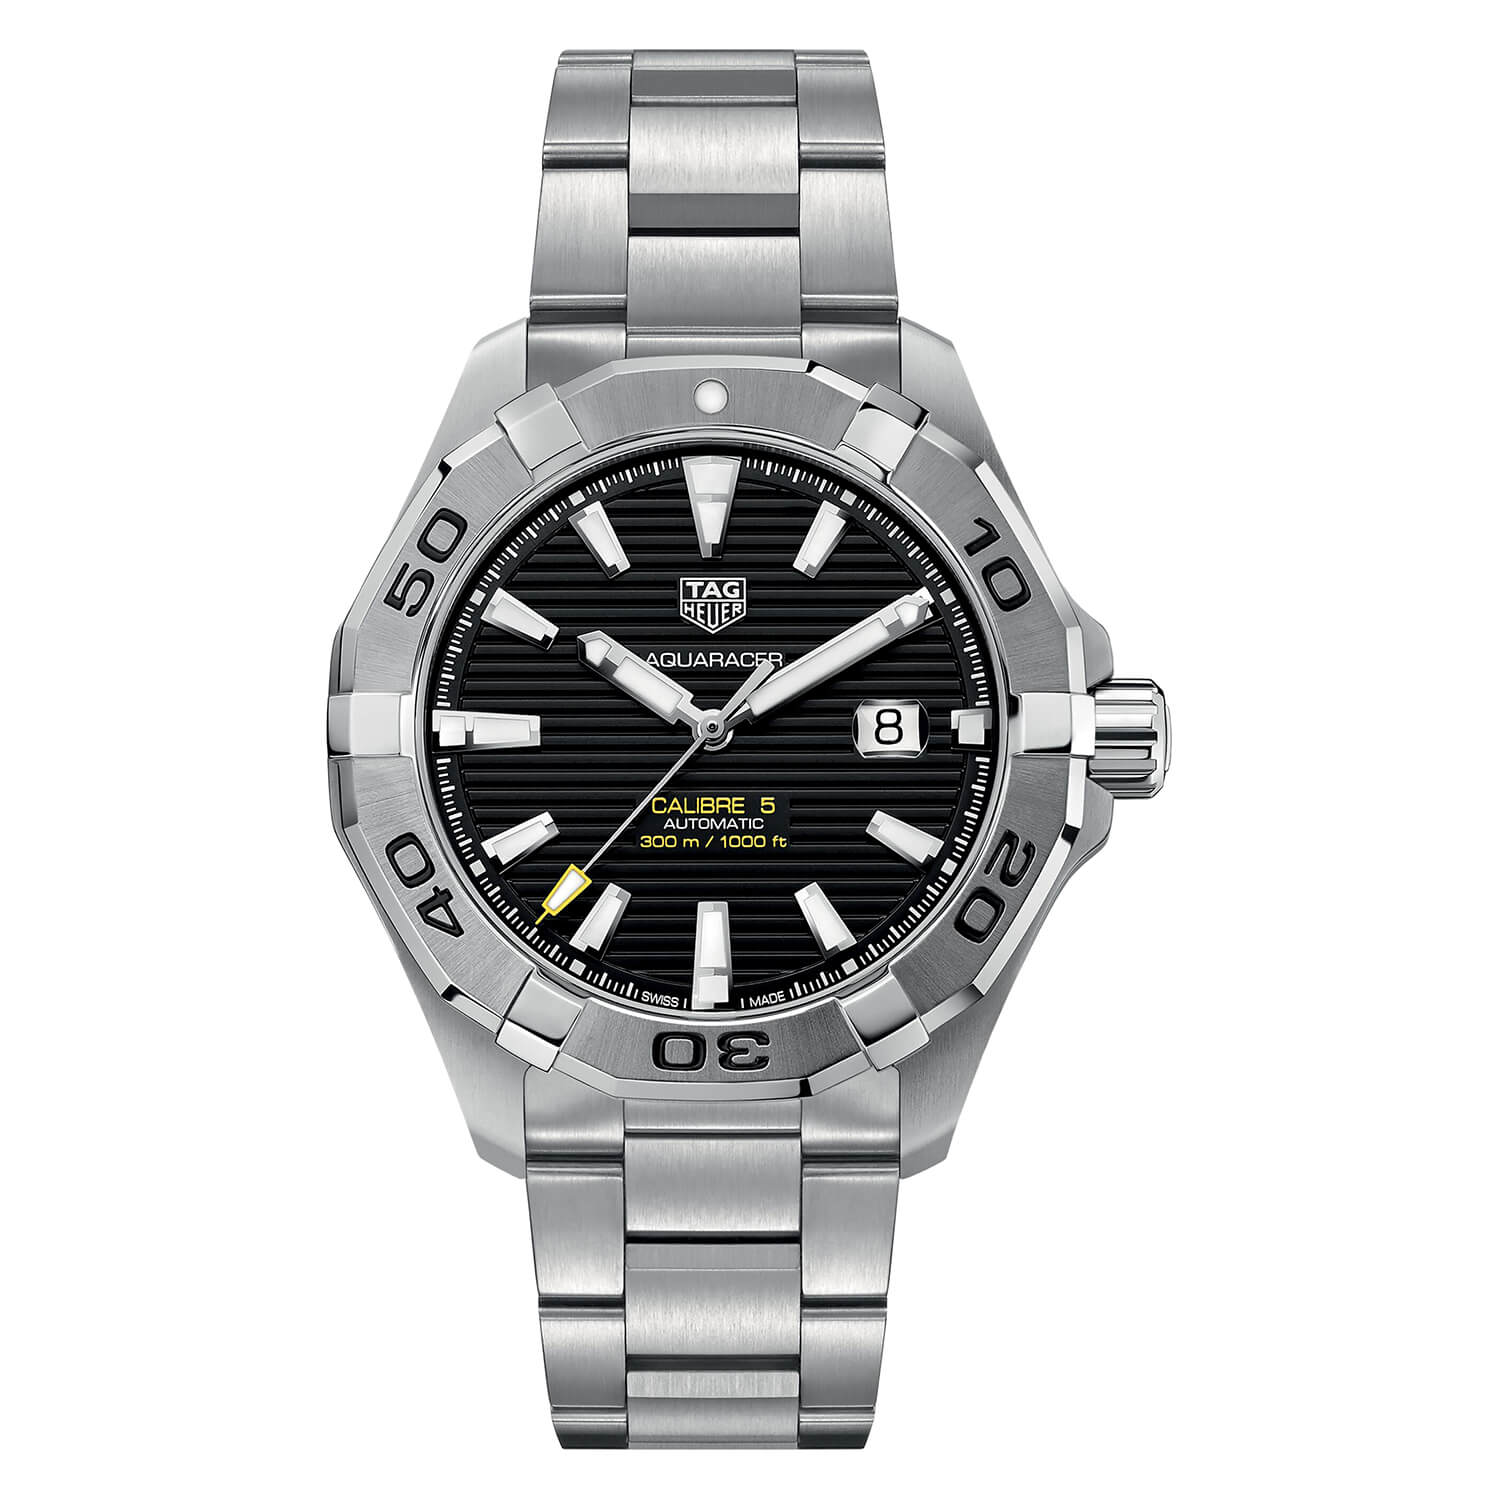 TAG Heuer Aquaracer Men's Black Dial Stainless Steel Watch